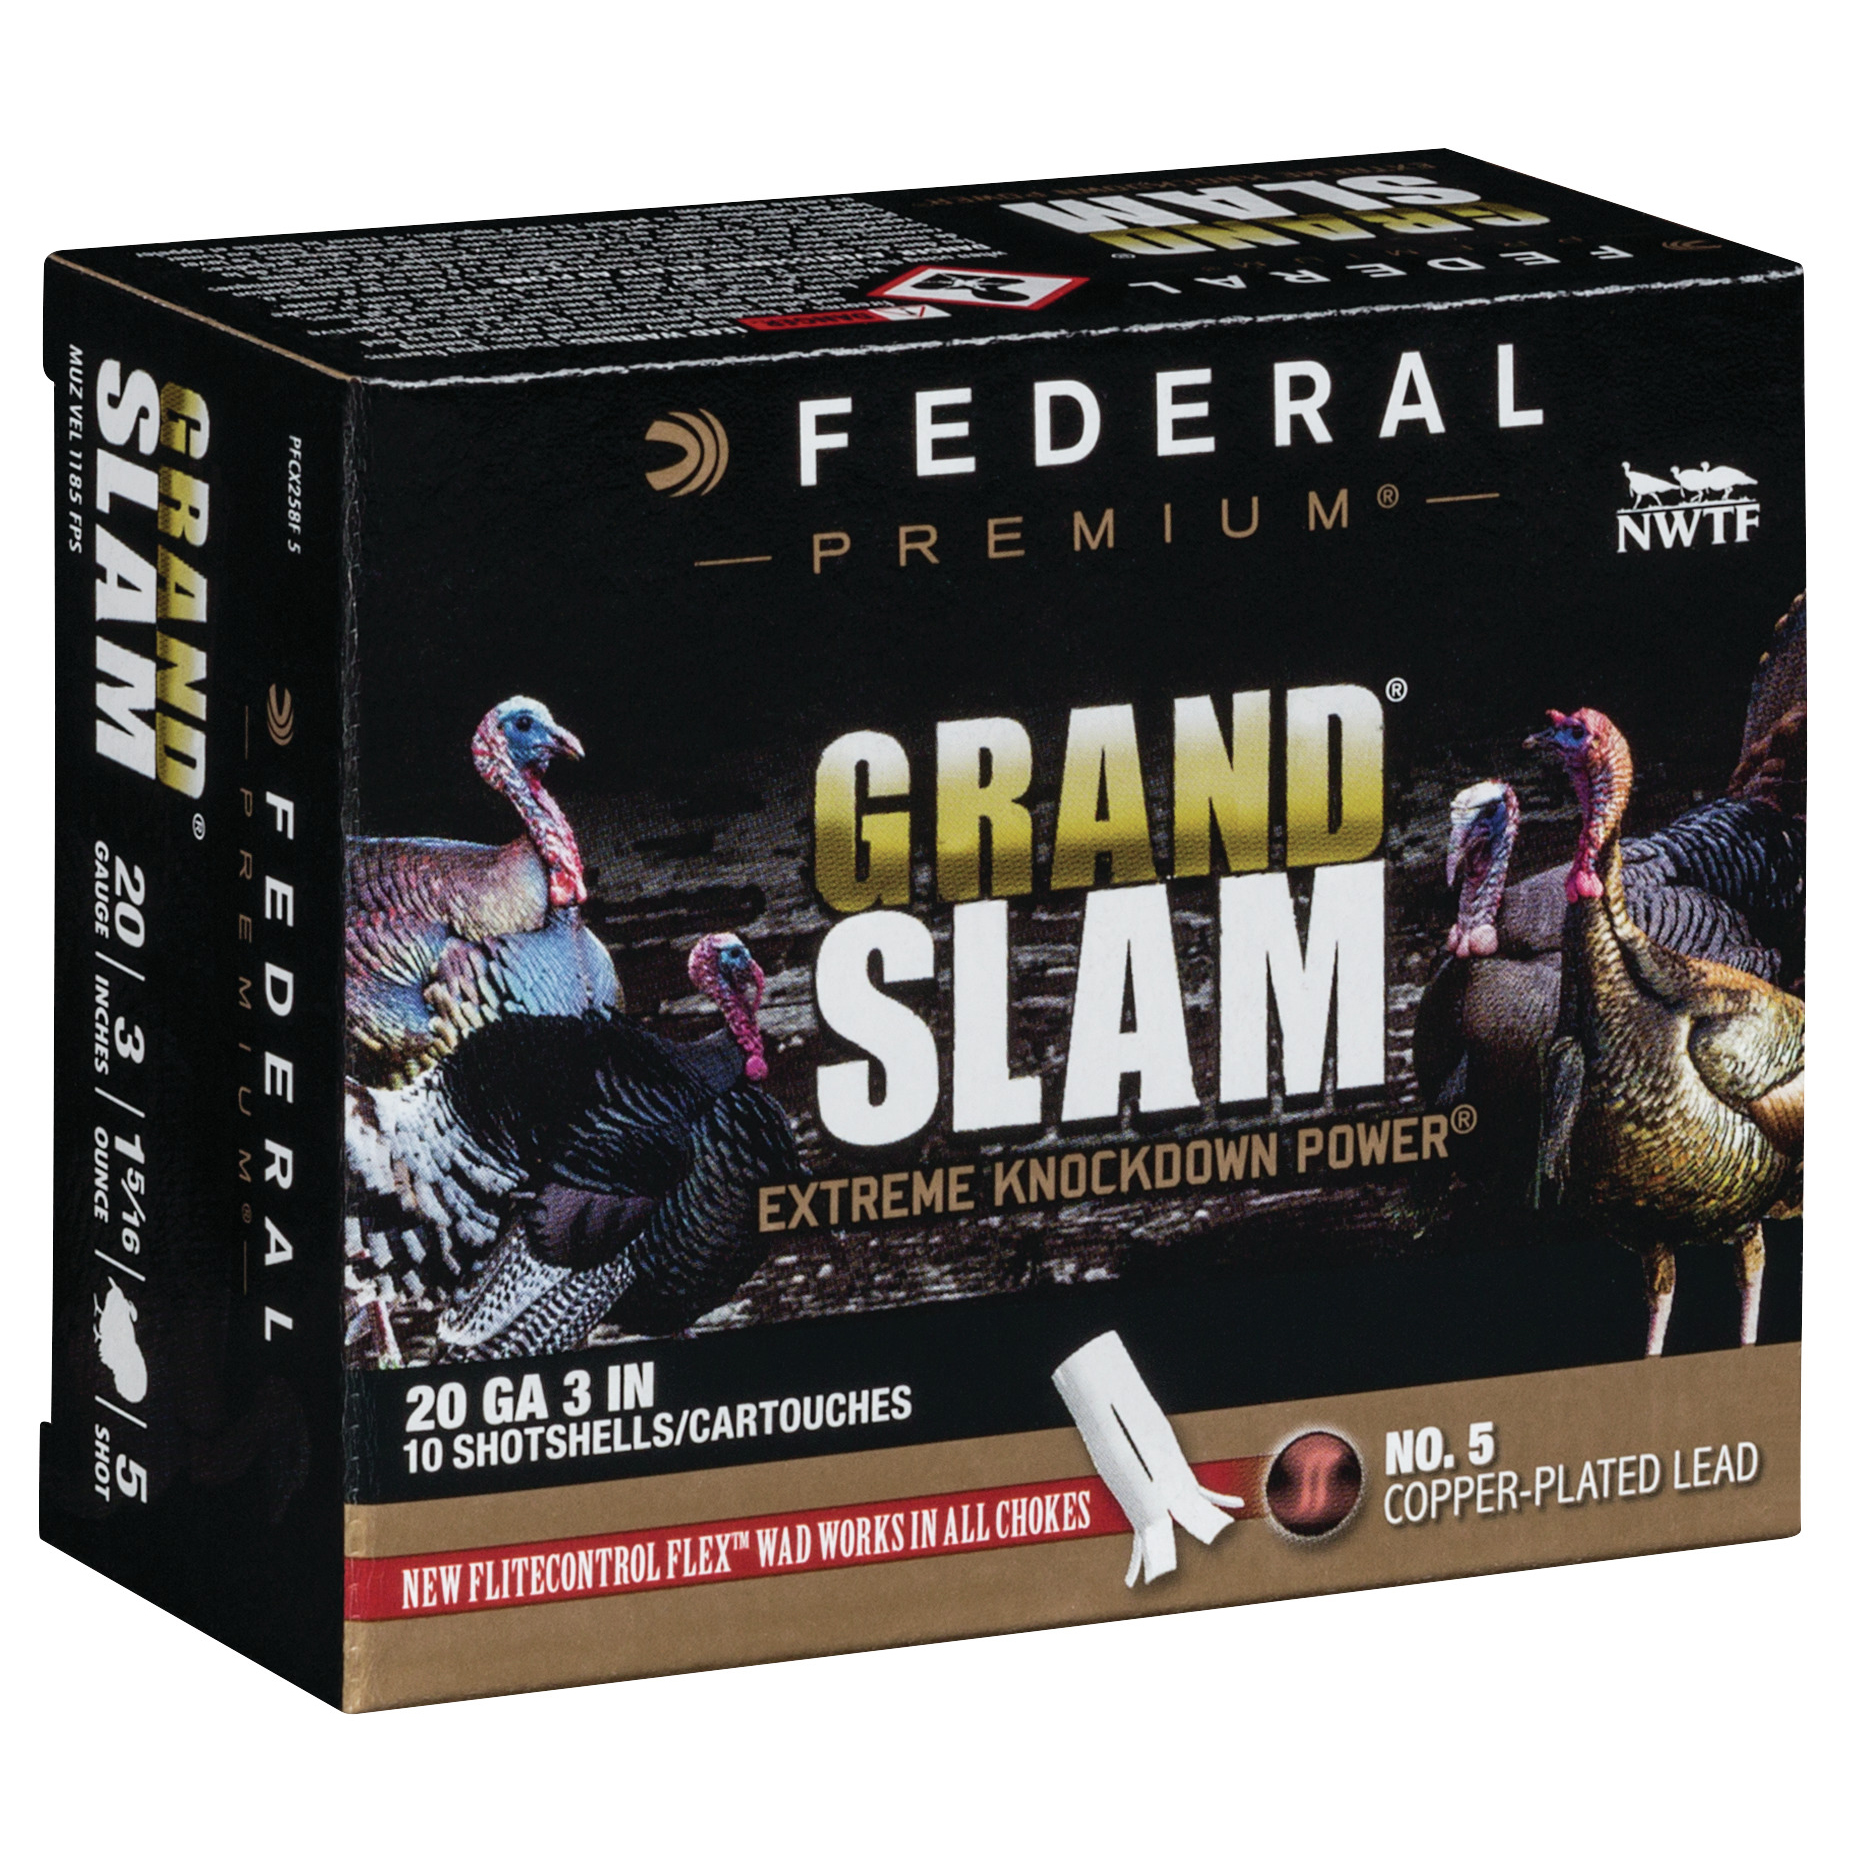 Federal Premium Grand Slam Shotshells, 20-ga, 3″, 1-5/16 oz, #5, 1185 fps